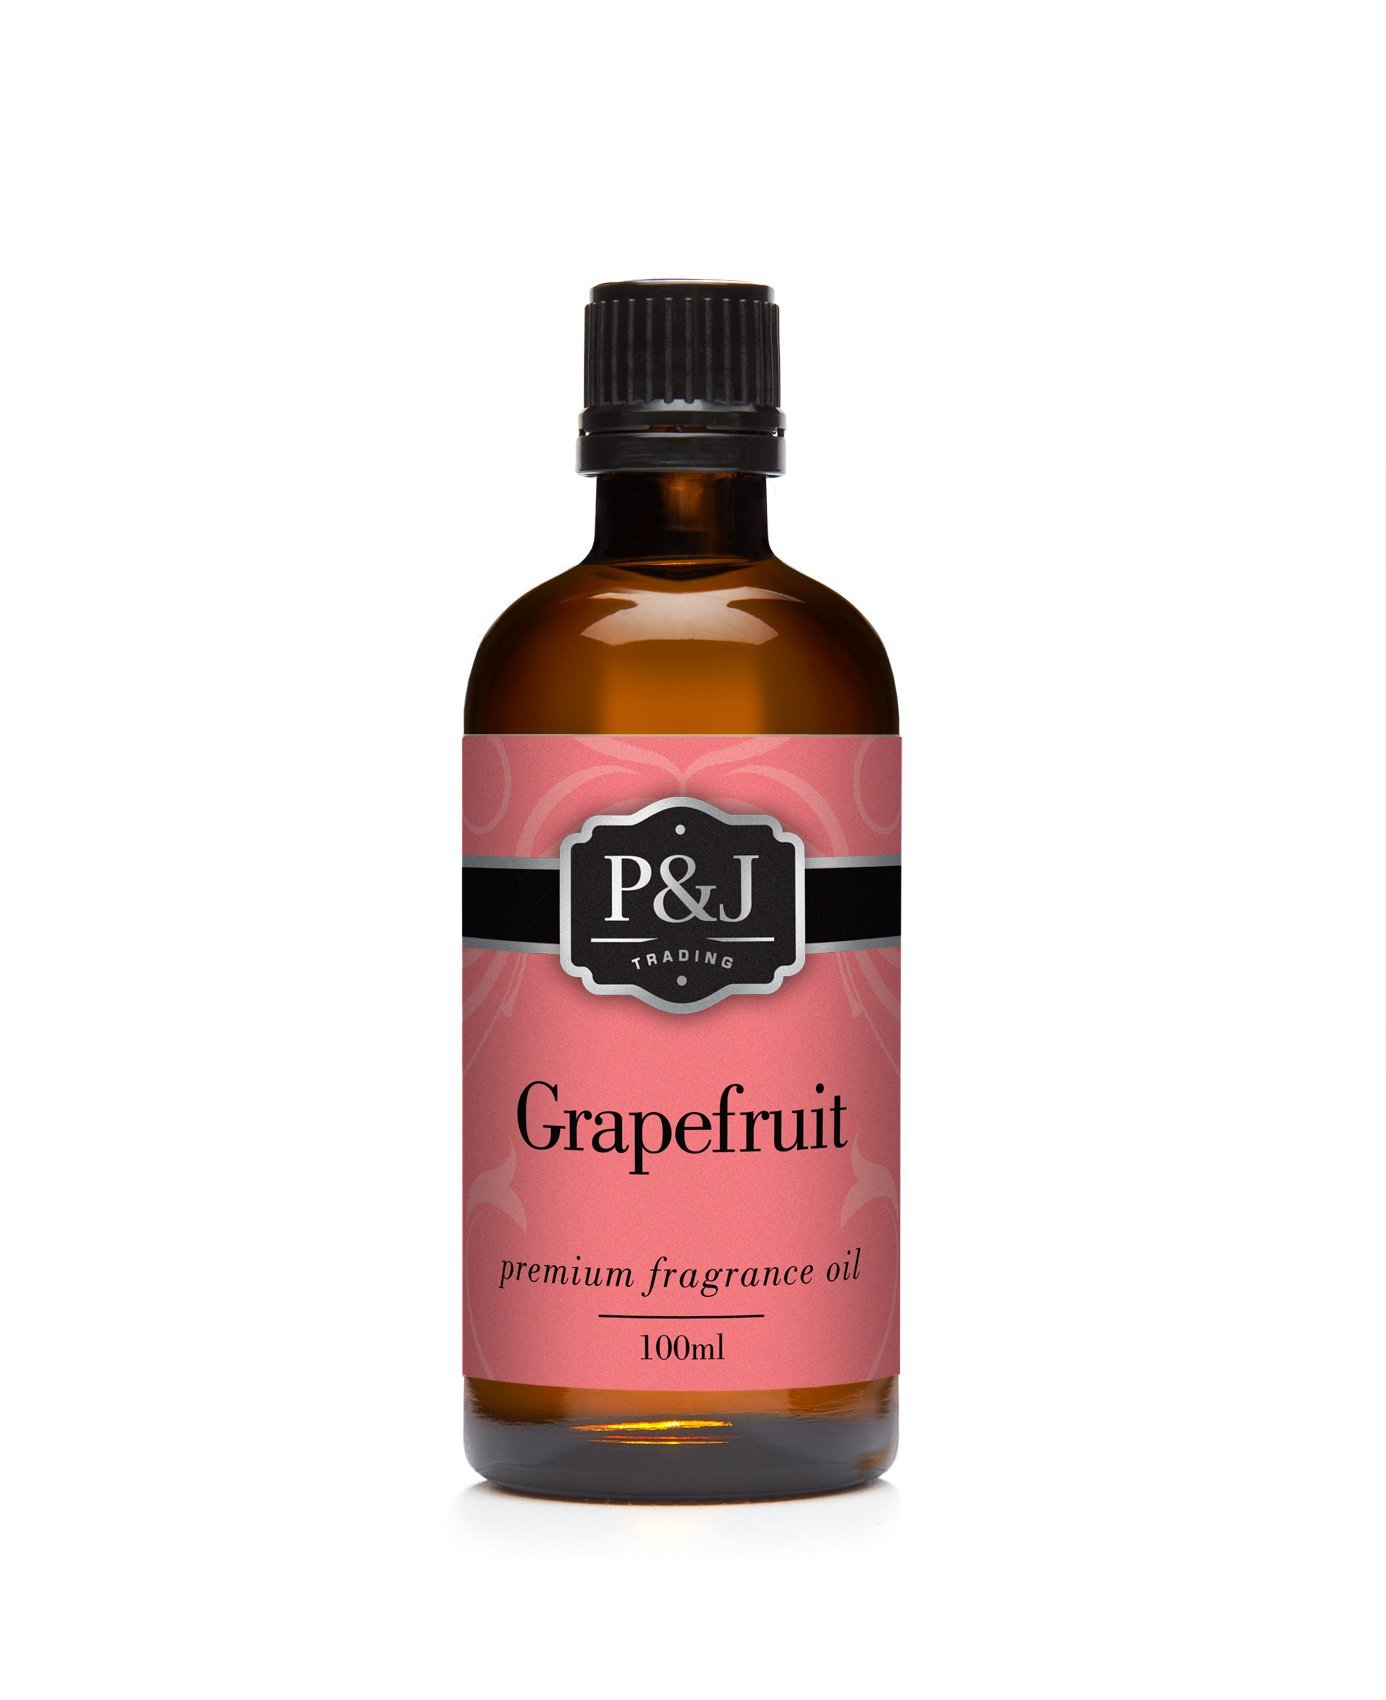 Grapefruit Fragrance Oil - Premium Grade Scented Oil - 100ml/3.3oz